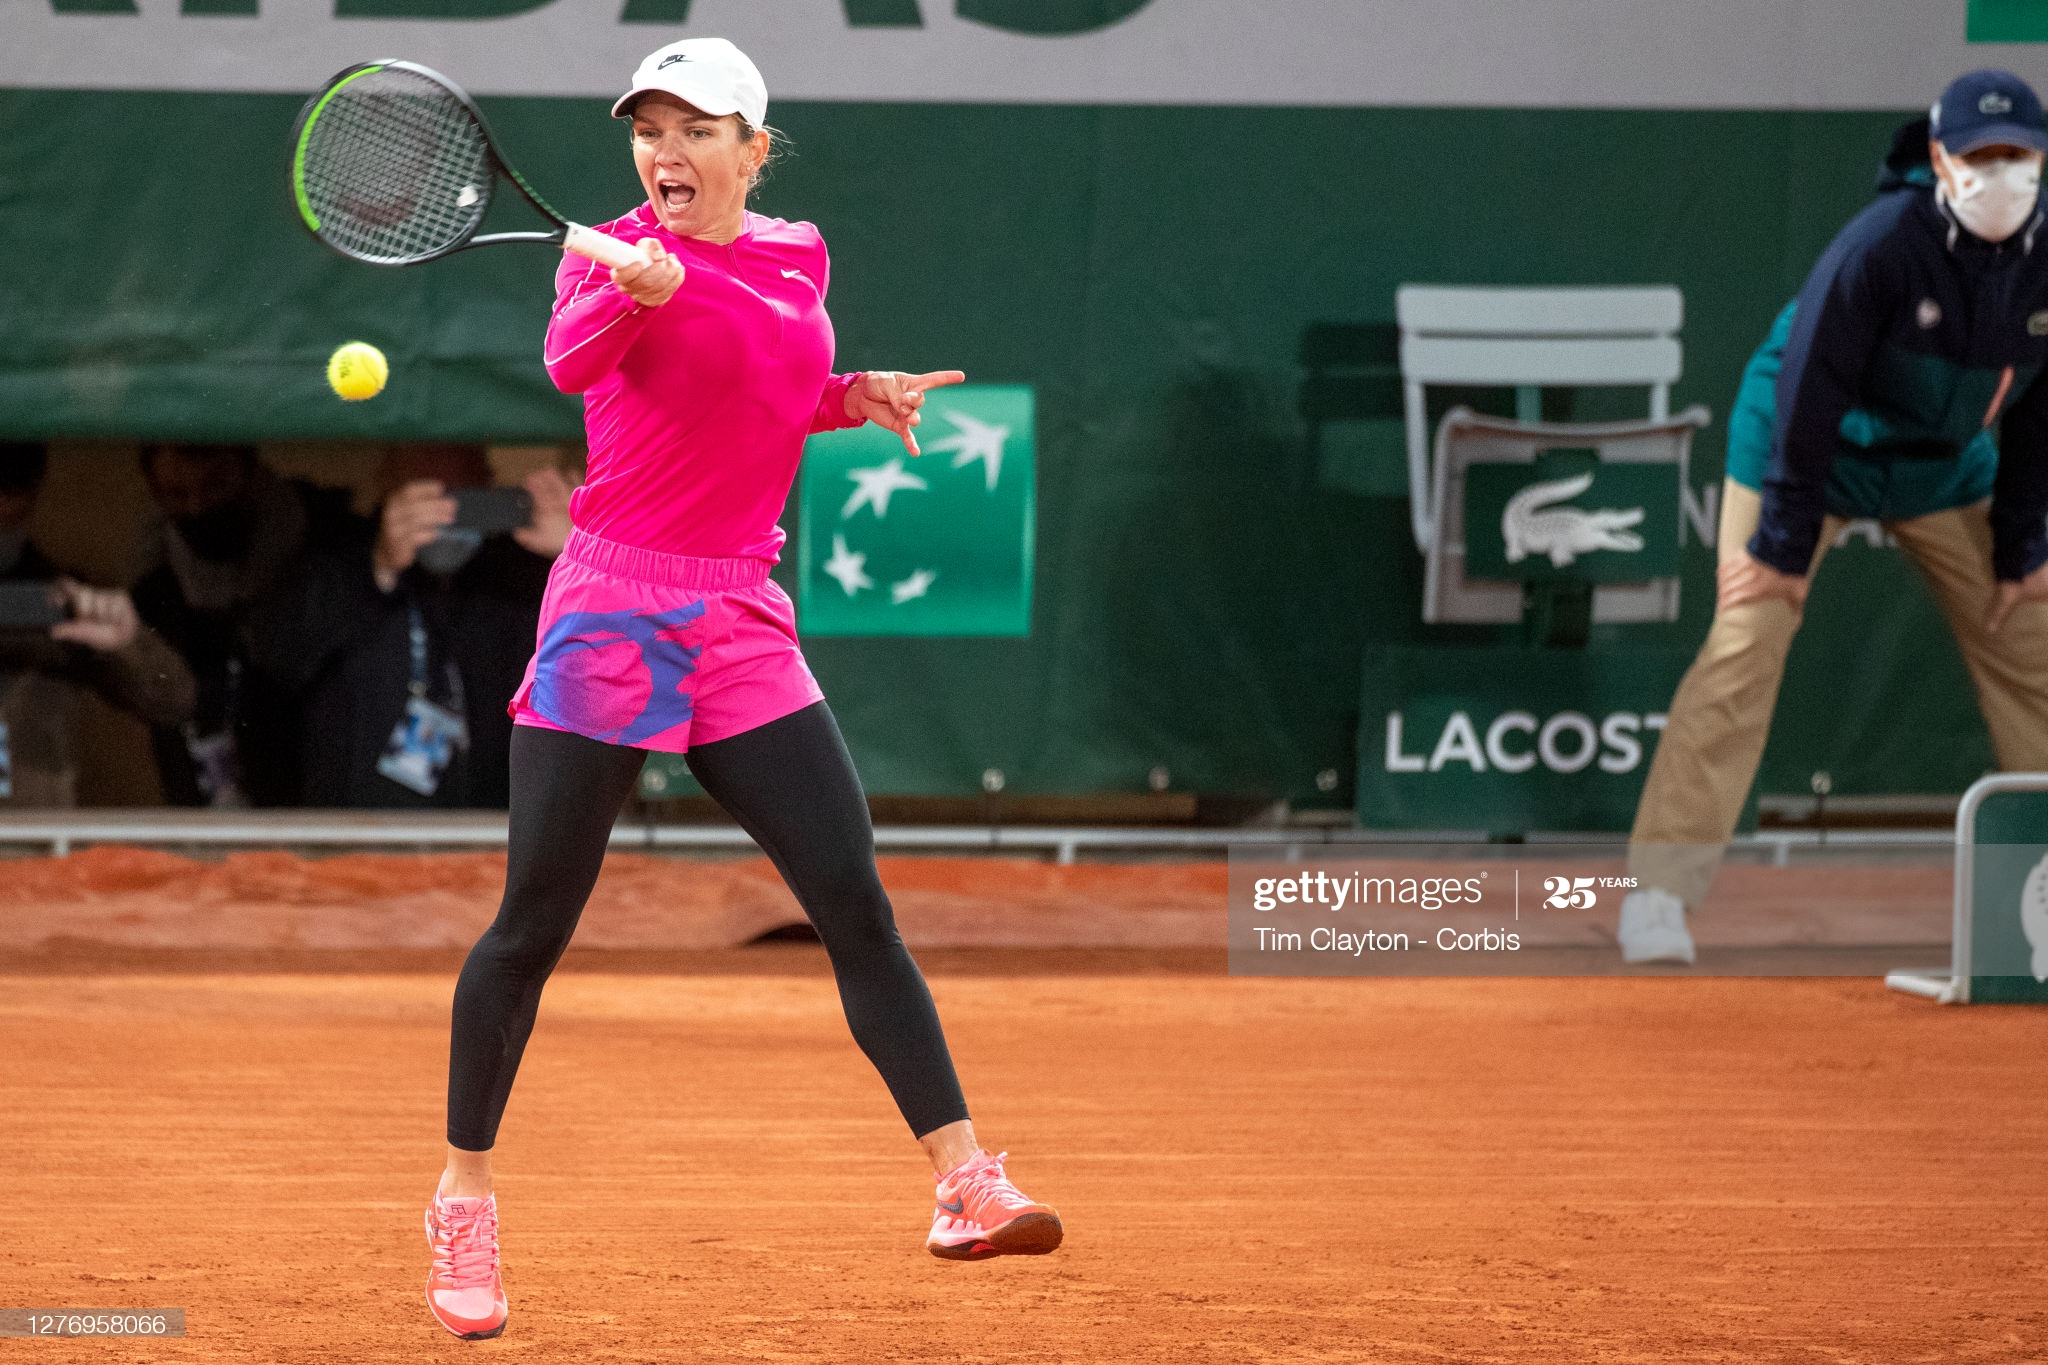 halep day one french open 2020